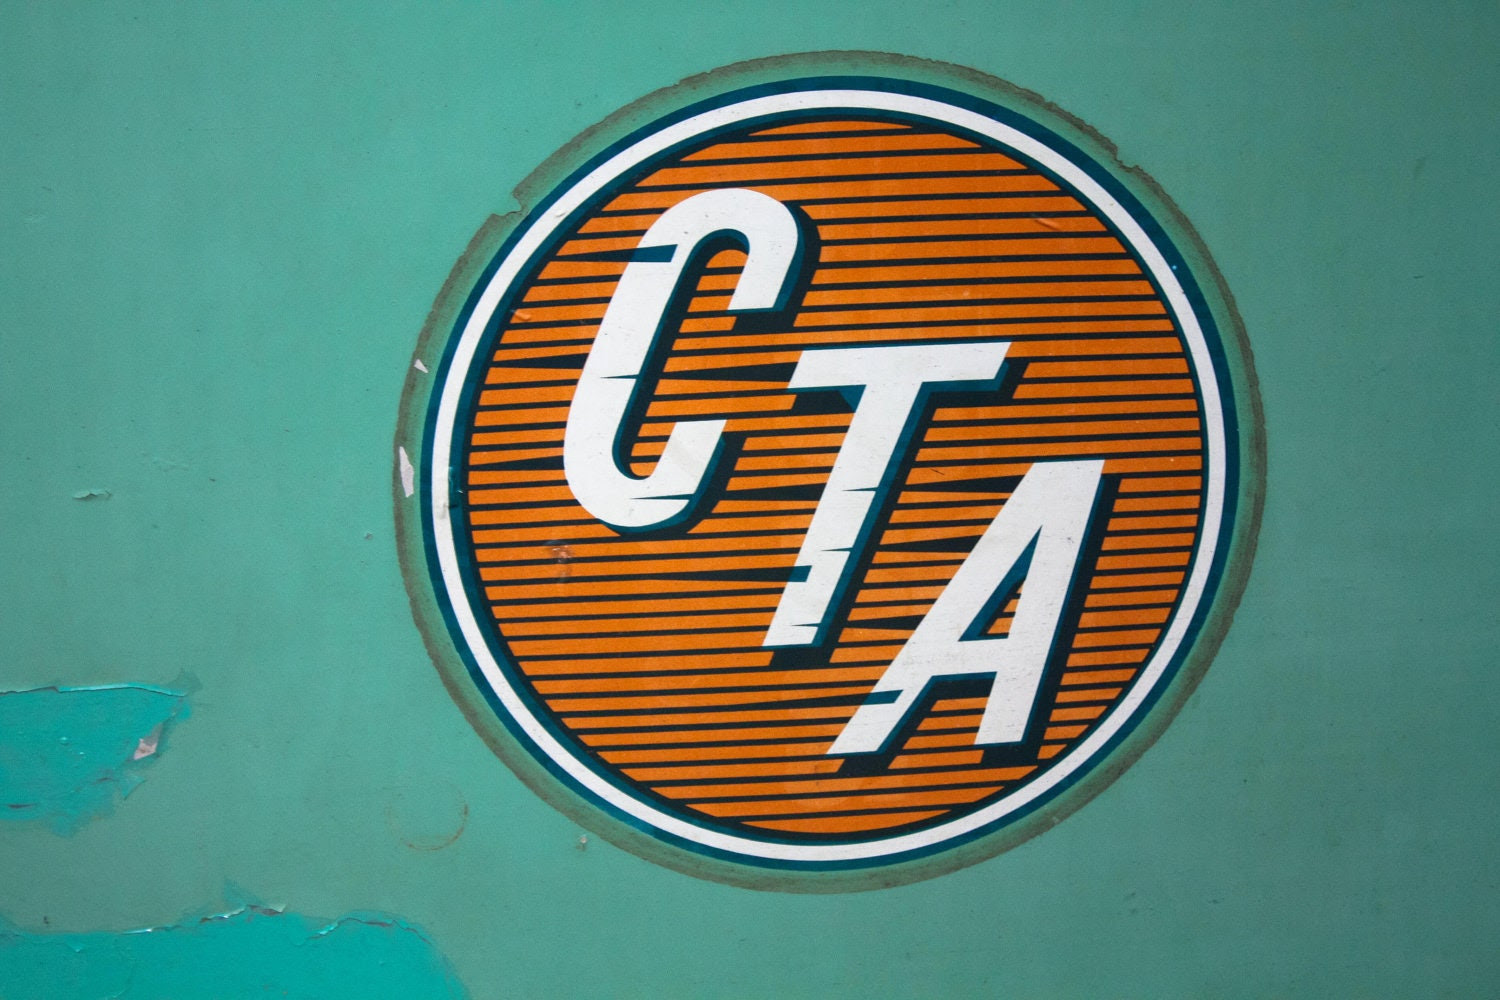 Vintage photograph CTA Chicago bus and train logo - green and orange - 8x10 Fine Art Photograph - etsy wall art - chicago art